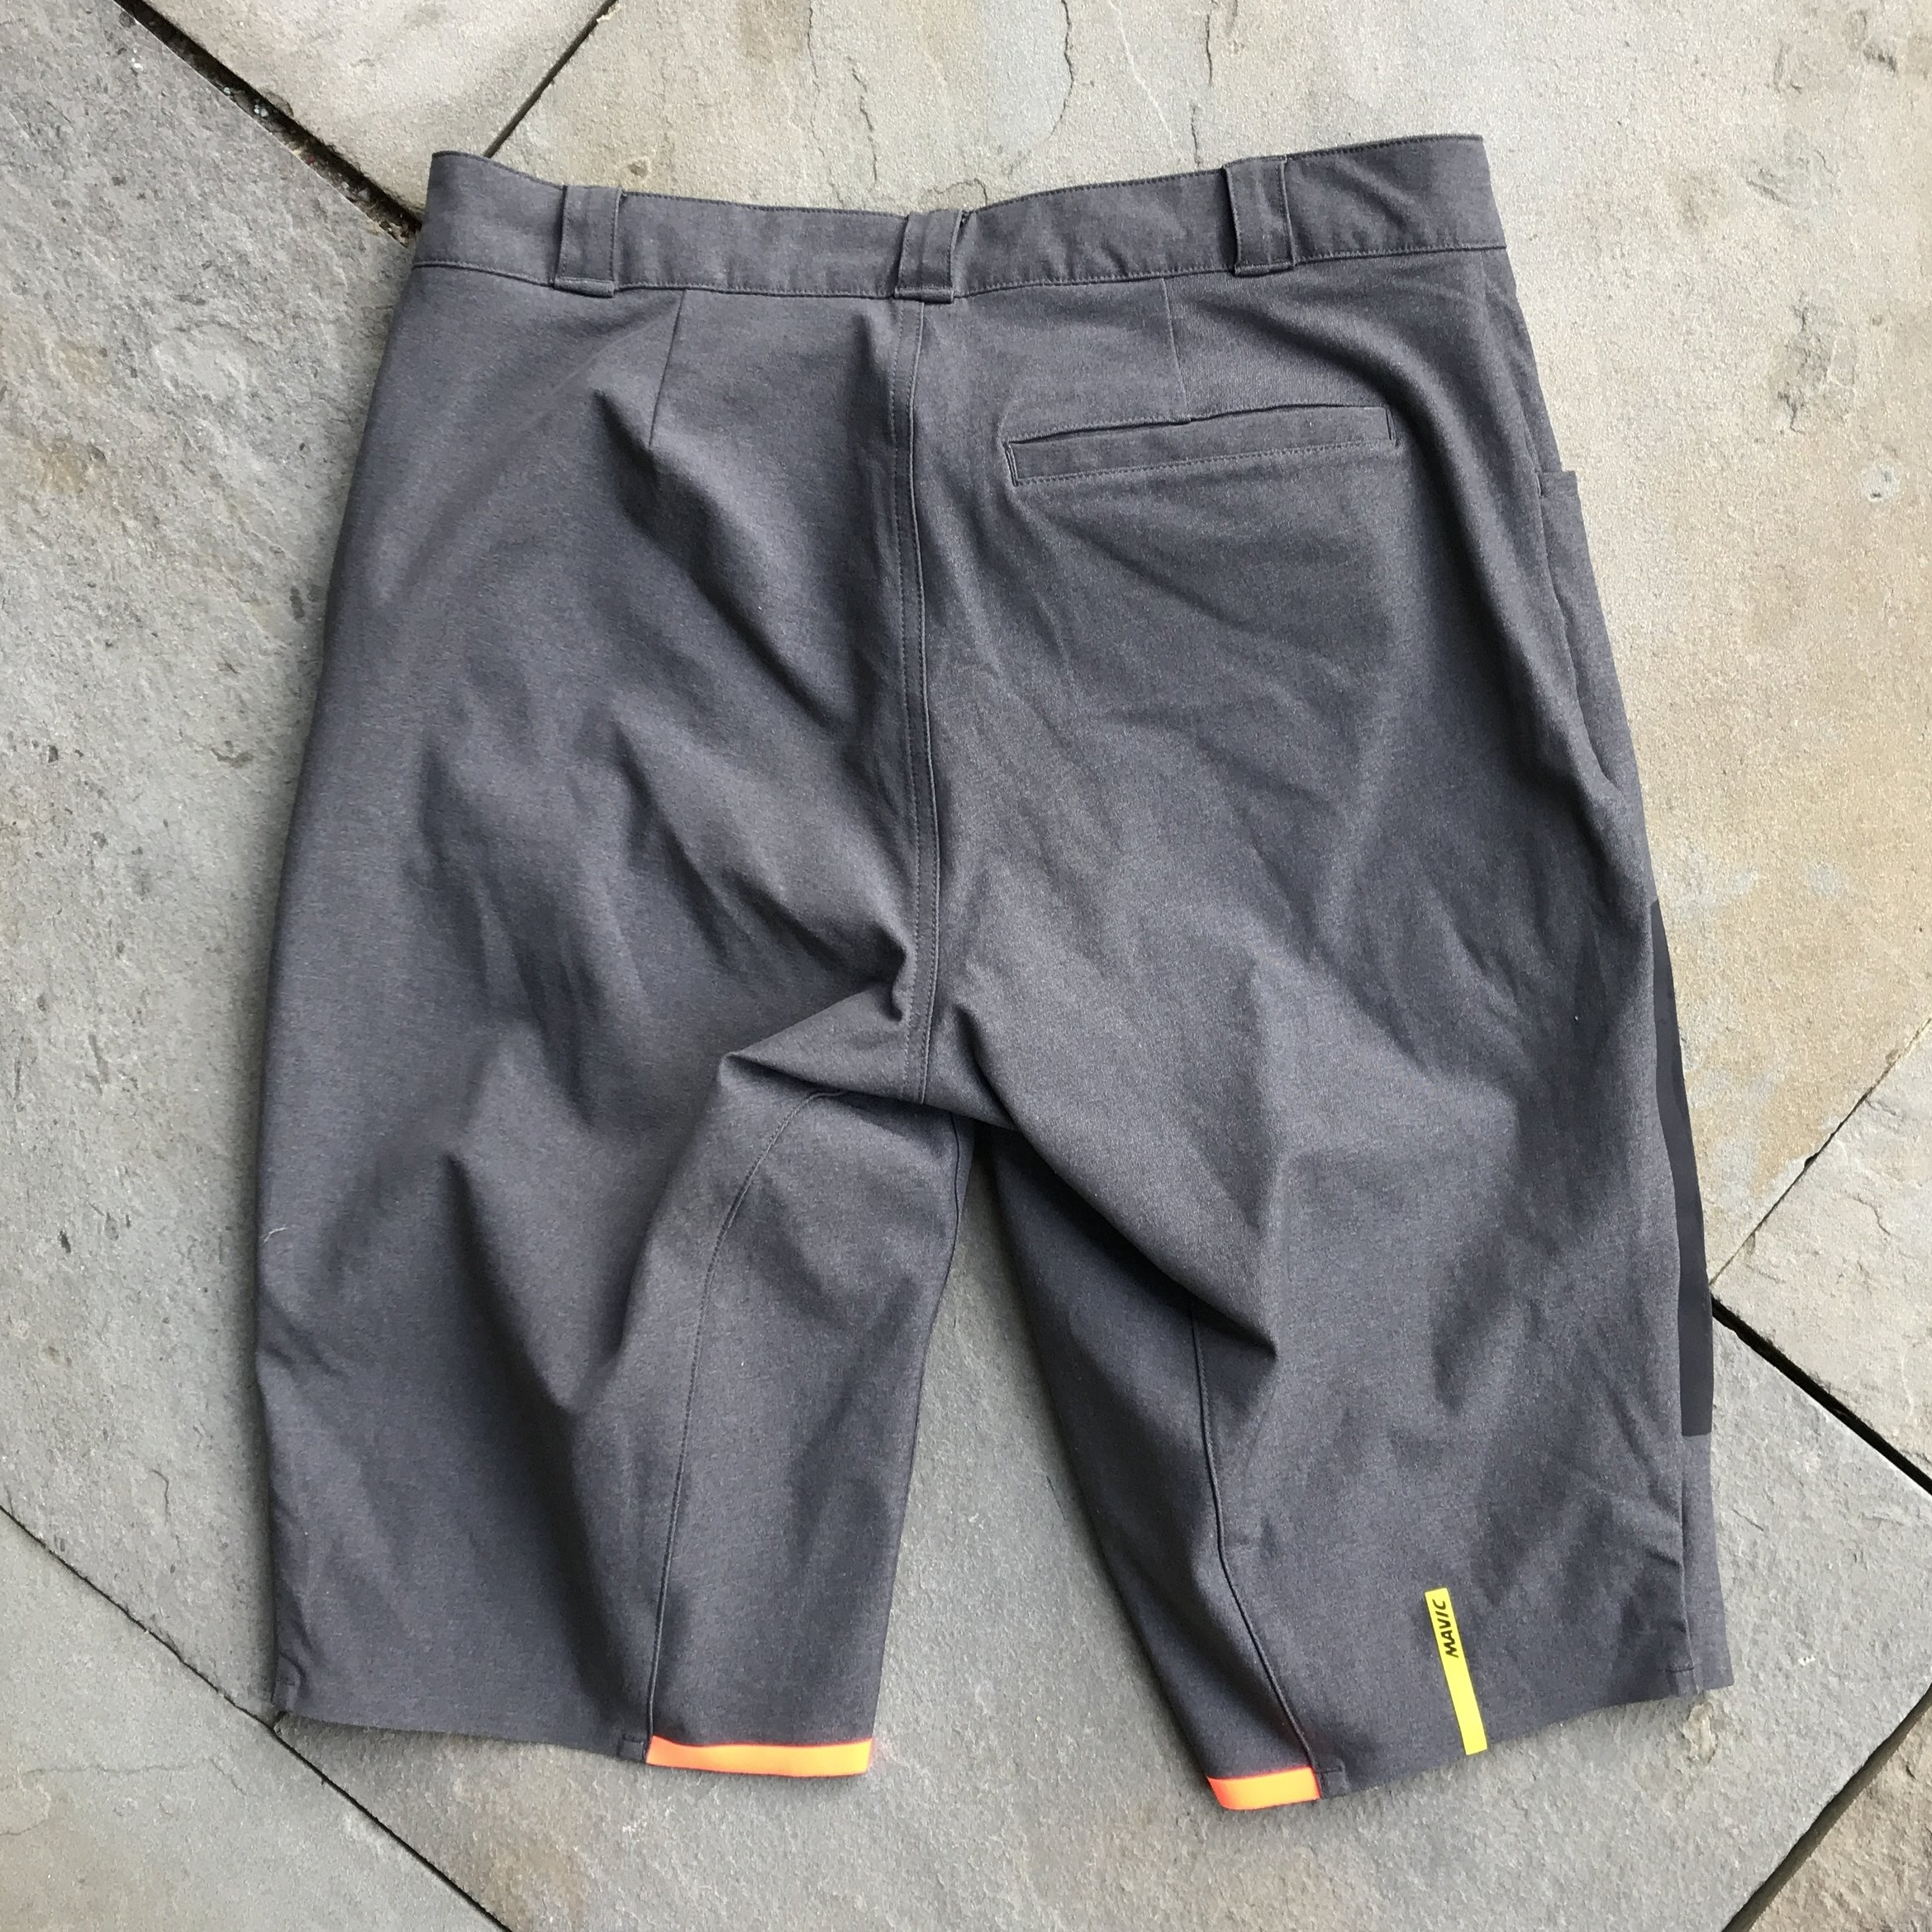 Mavic_Allroad Shorts_46.JPG